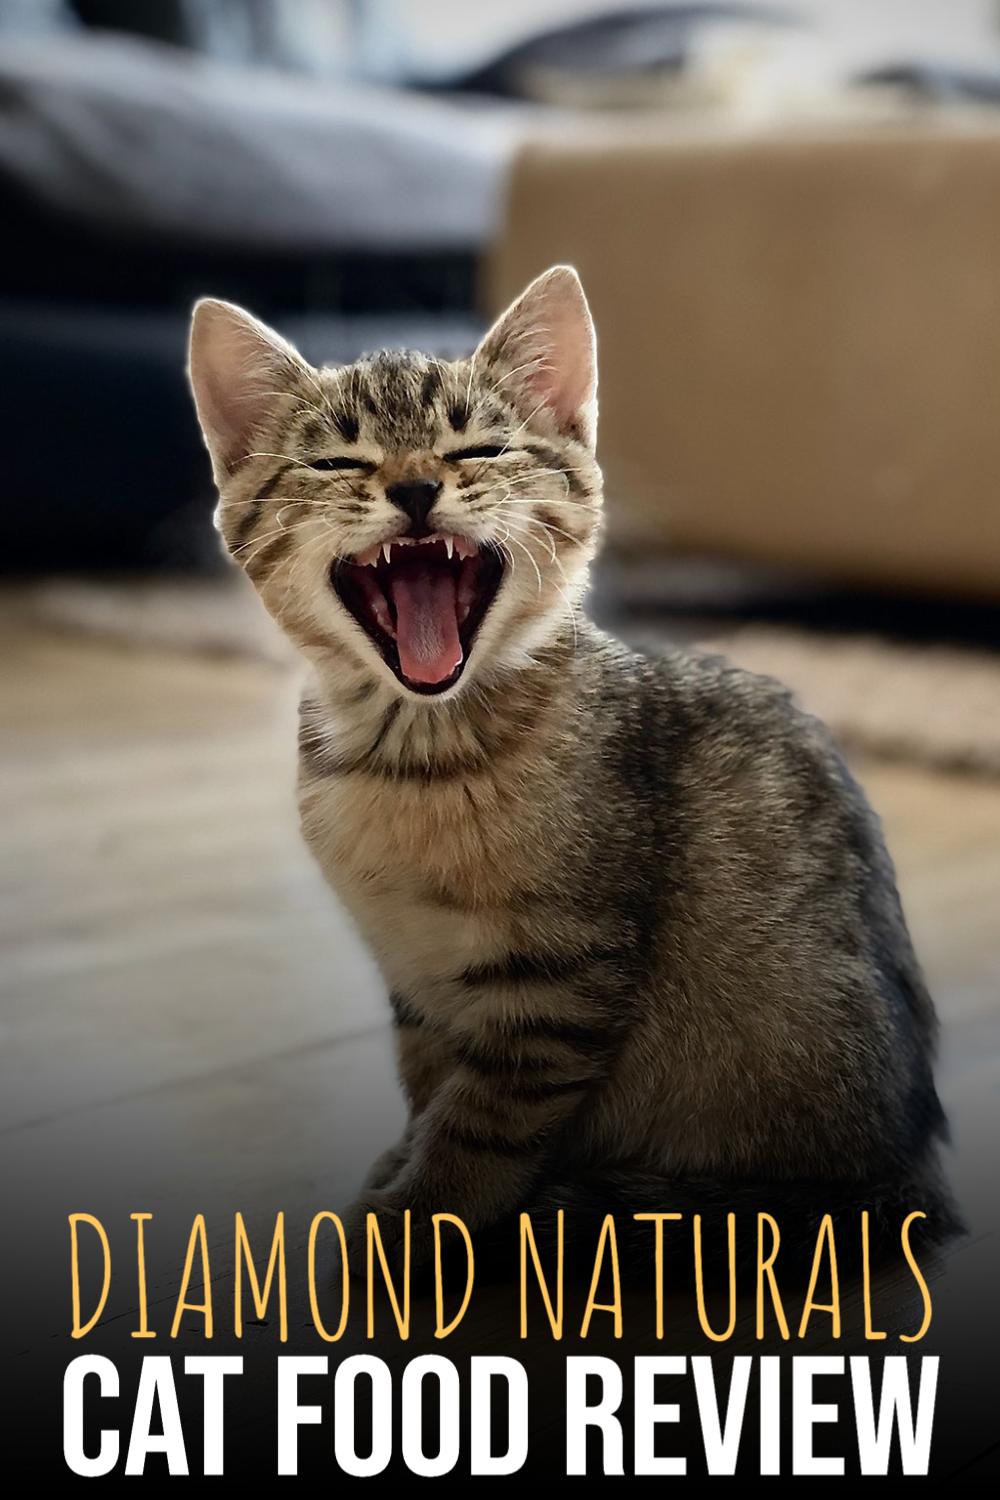 Diamond Naturals Cat Food Review In 2020 Natural Cat Food Cat Food Reviews Cat Food